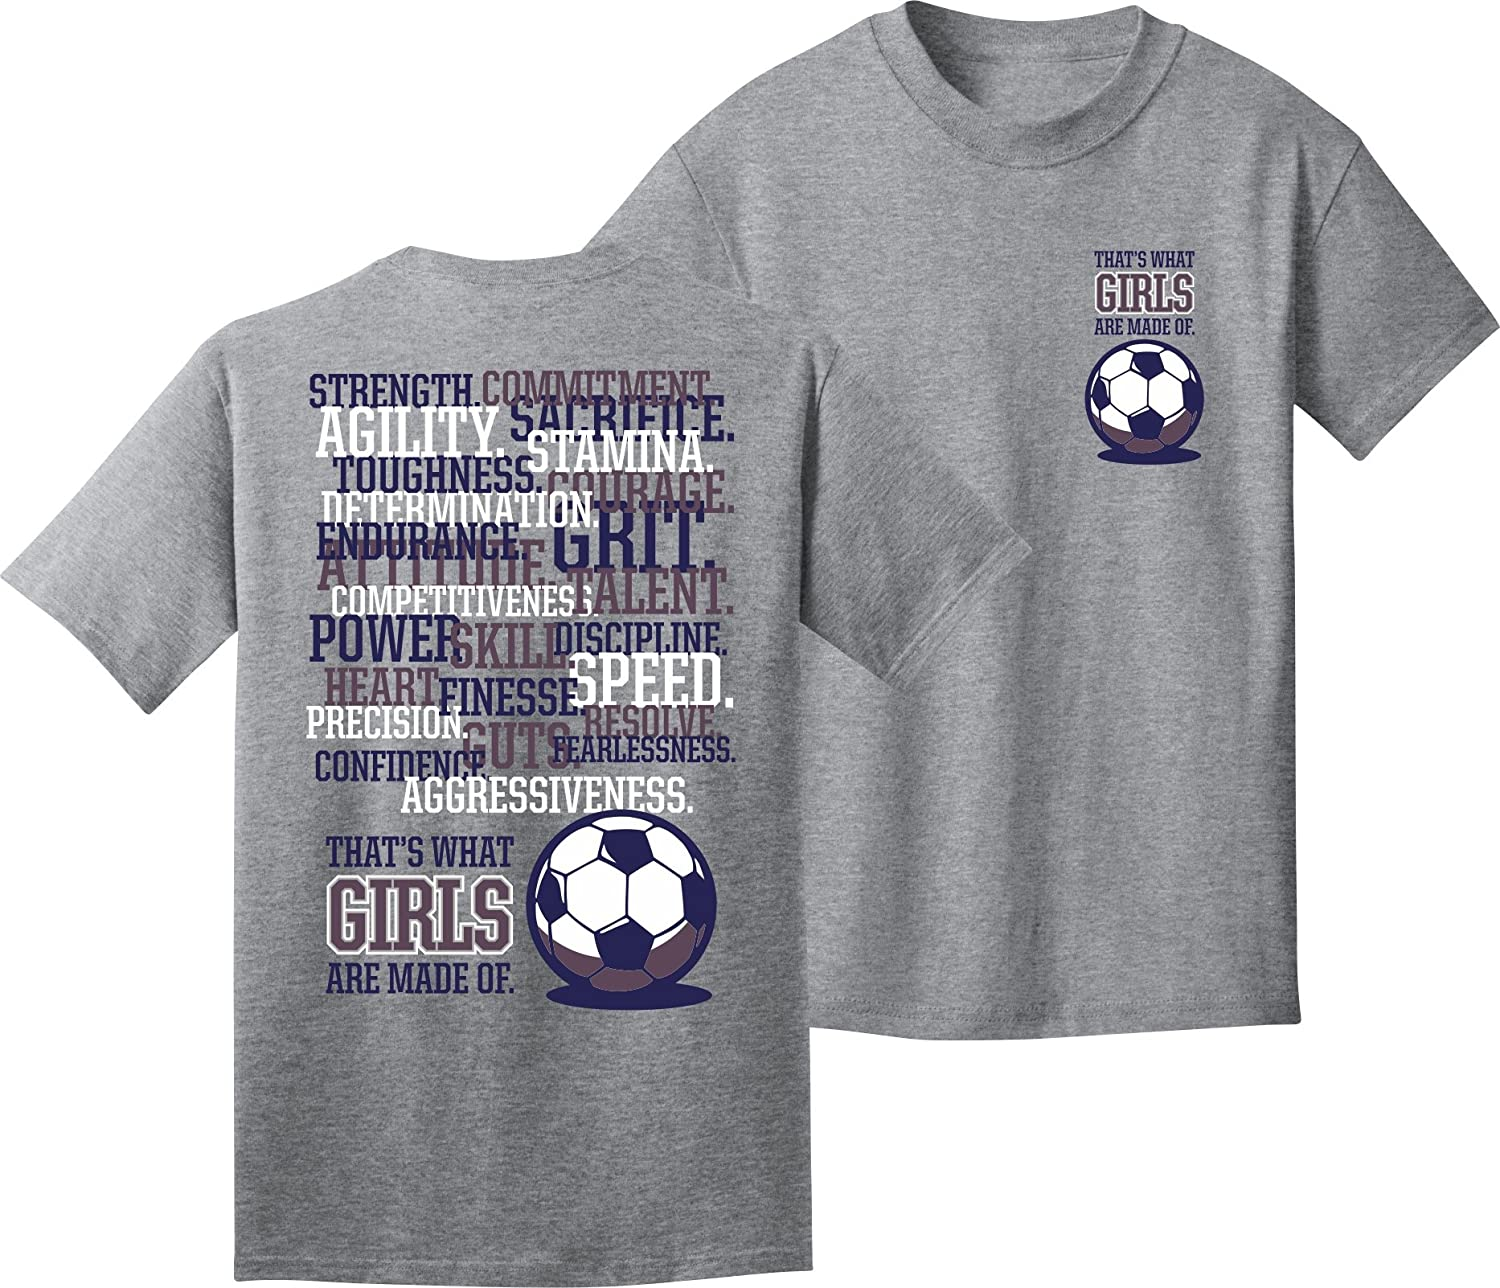 ガールズサッカーTシャツ: Girls Are Made of Soccer B00CBYUYJKグレー Youth Small